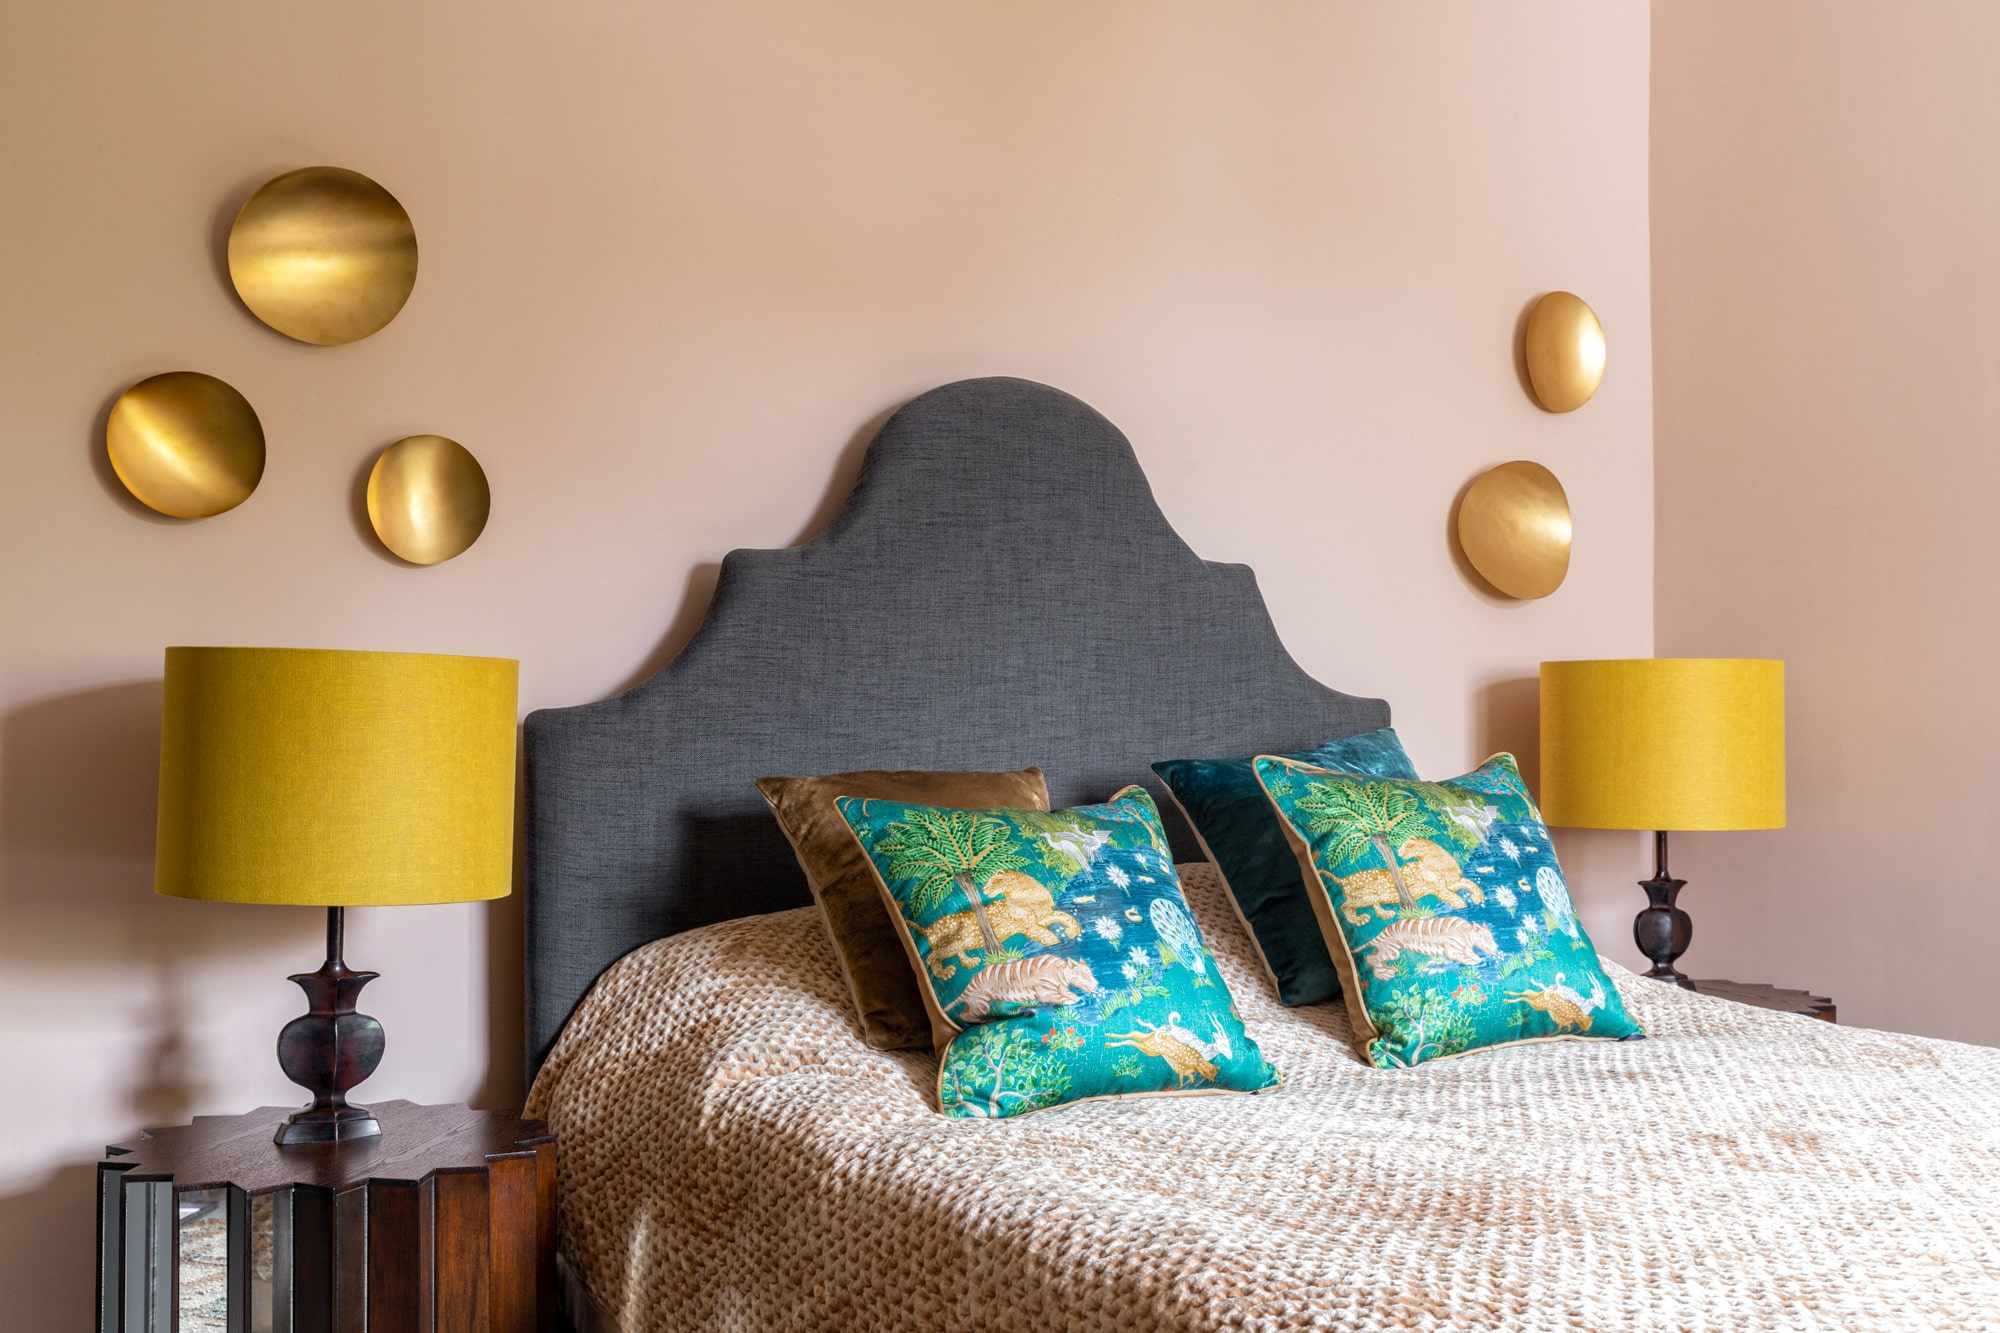 Interior photo: a bedroom with salmon pink walls, grey bed, glass bedside table with a yellow lamp on top